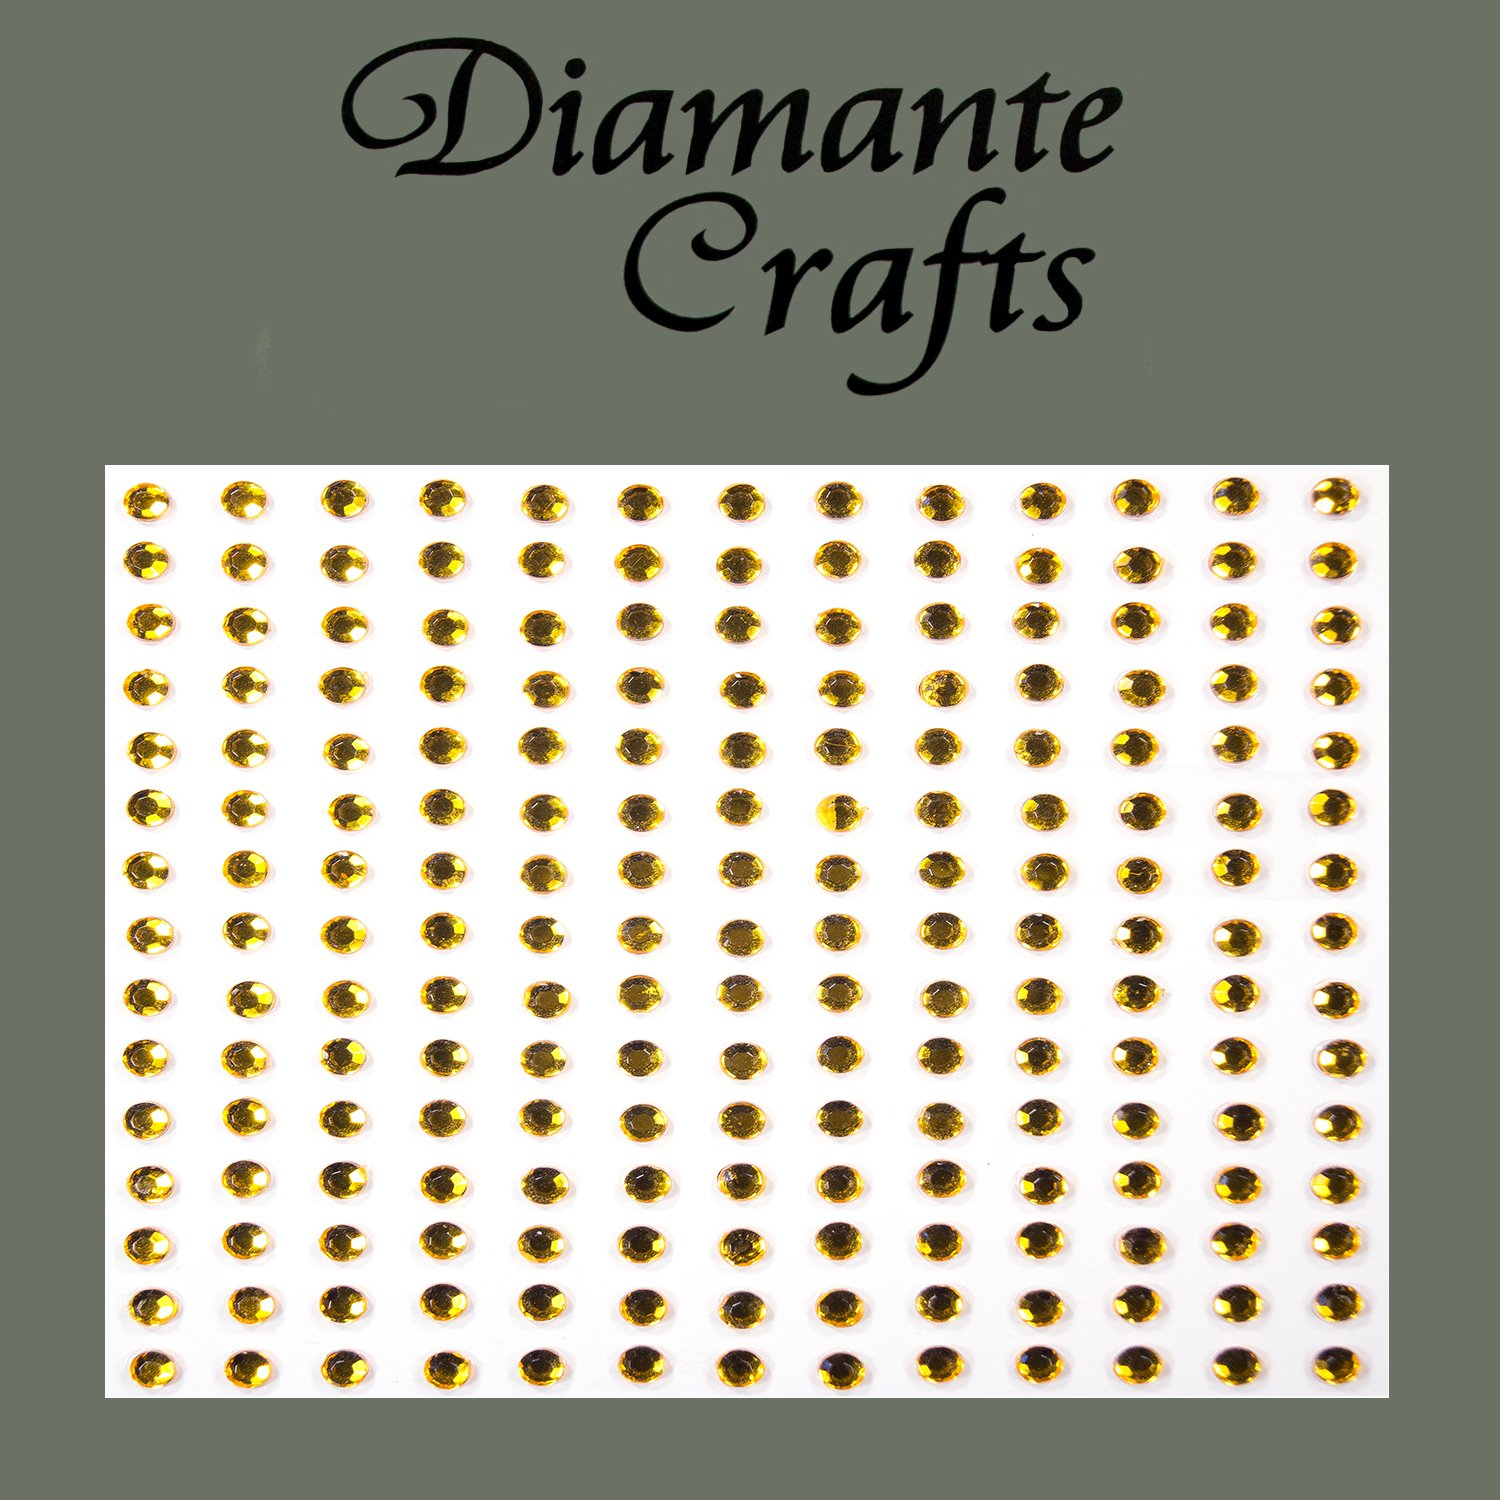 195 x 3mm Gold Diamante Self Adhesive Rhinestone Body Gems - created exclusively for Diamante Crafts